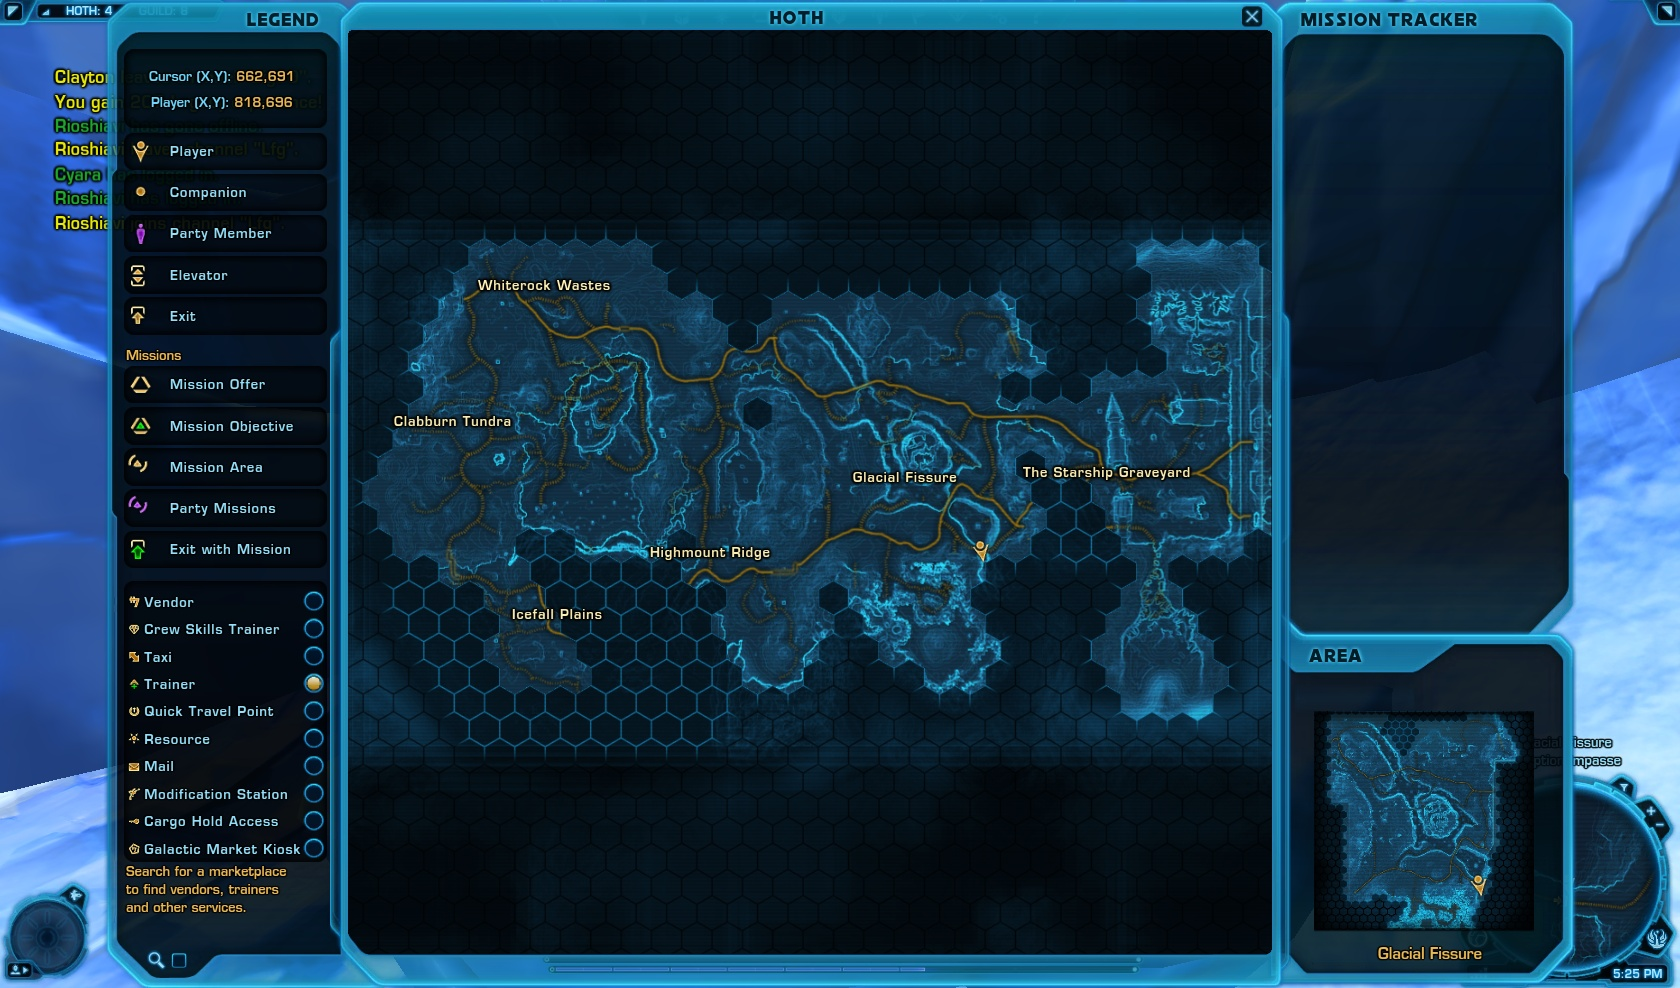 Hoth Location World Map View